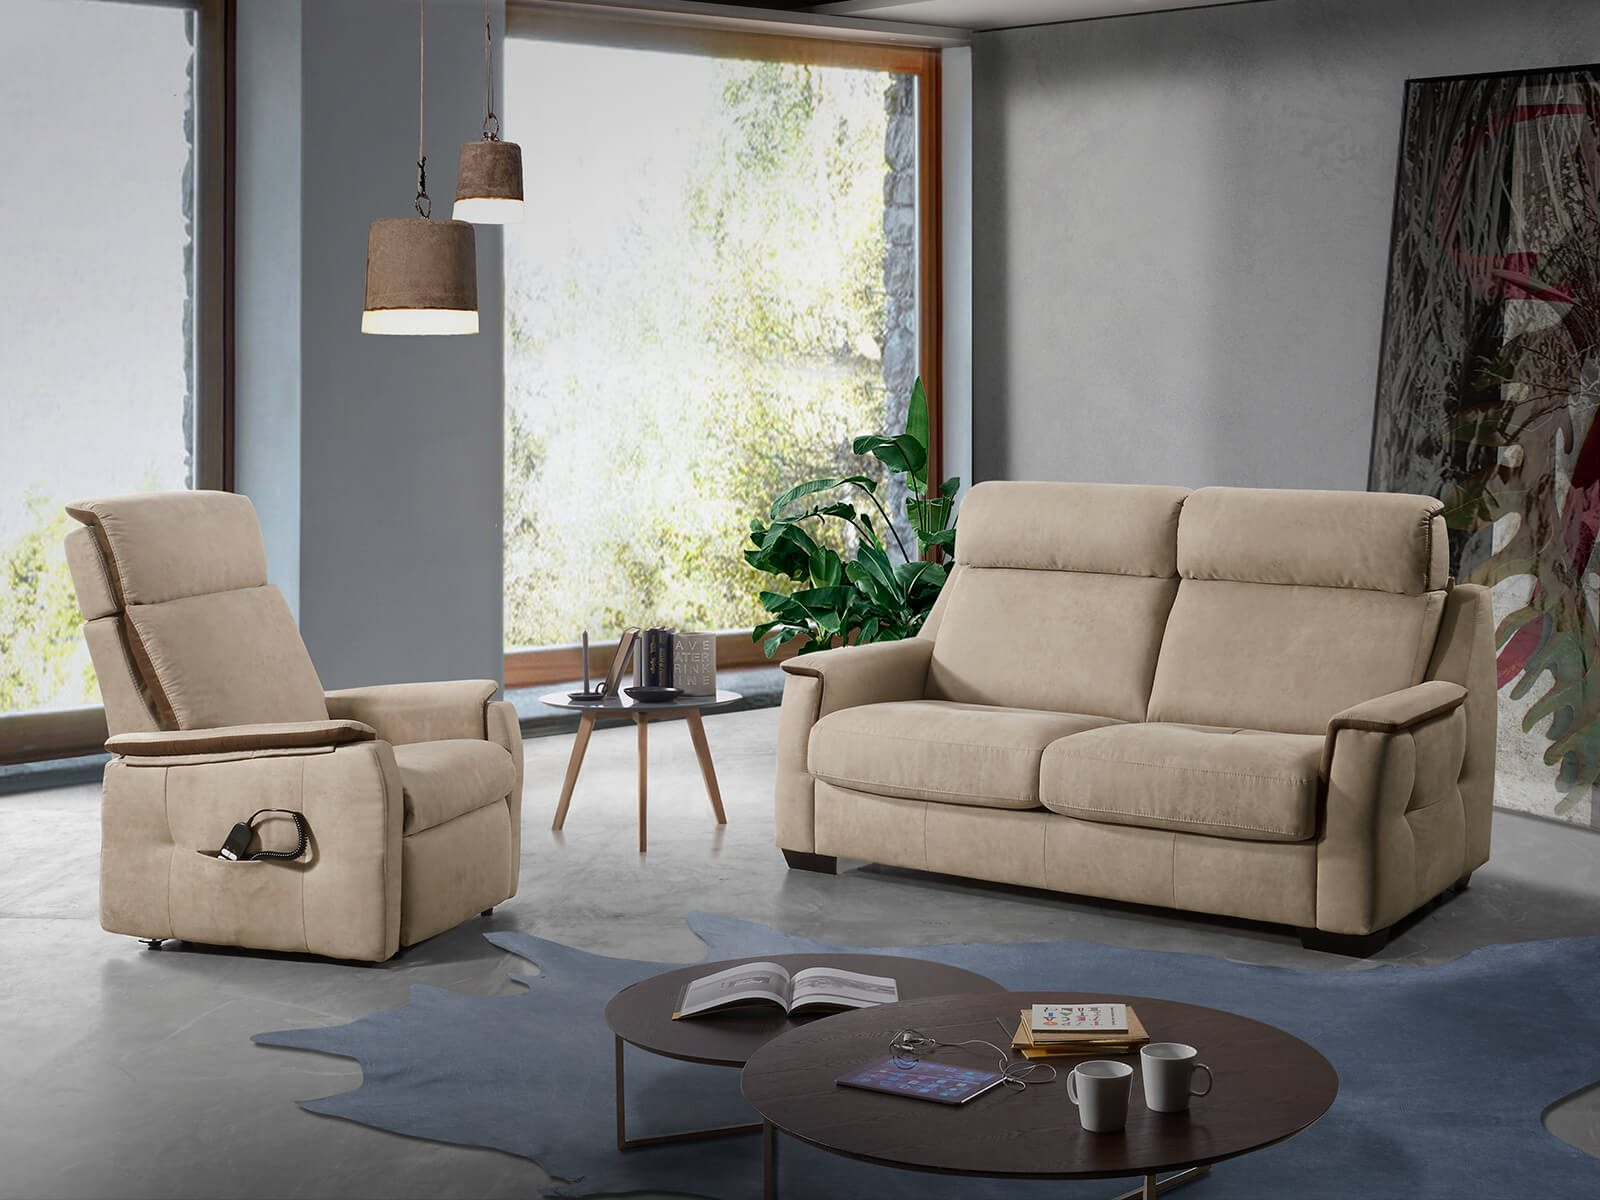 Poltrone e sofa como divano valdena poltrone sofa idees for Poltrone e sofa genova